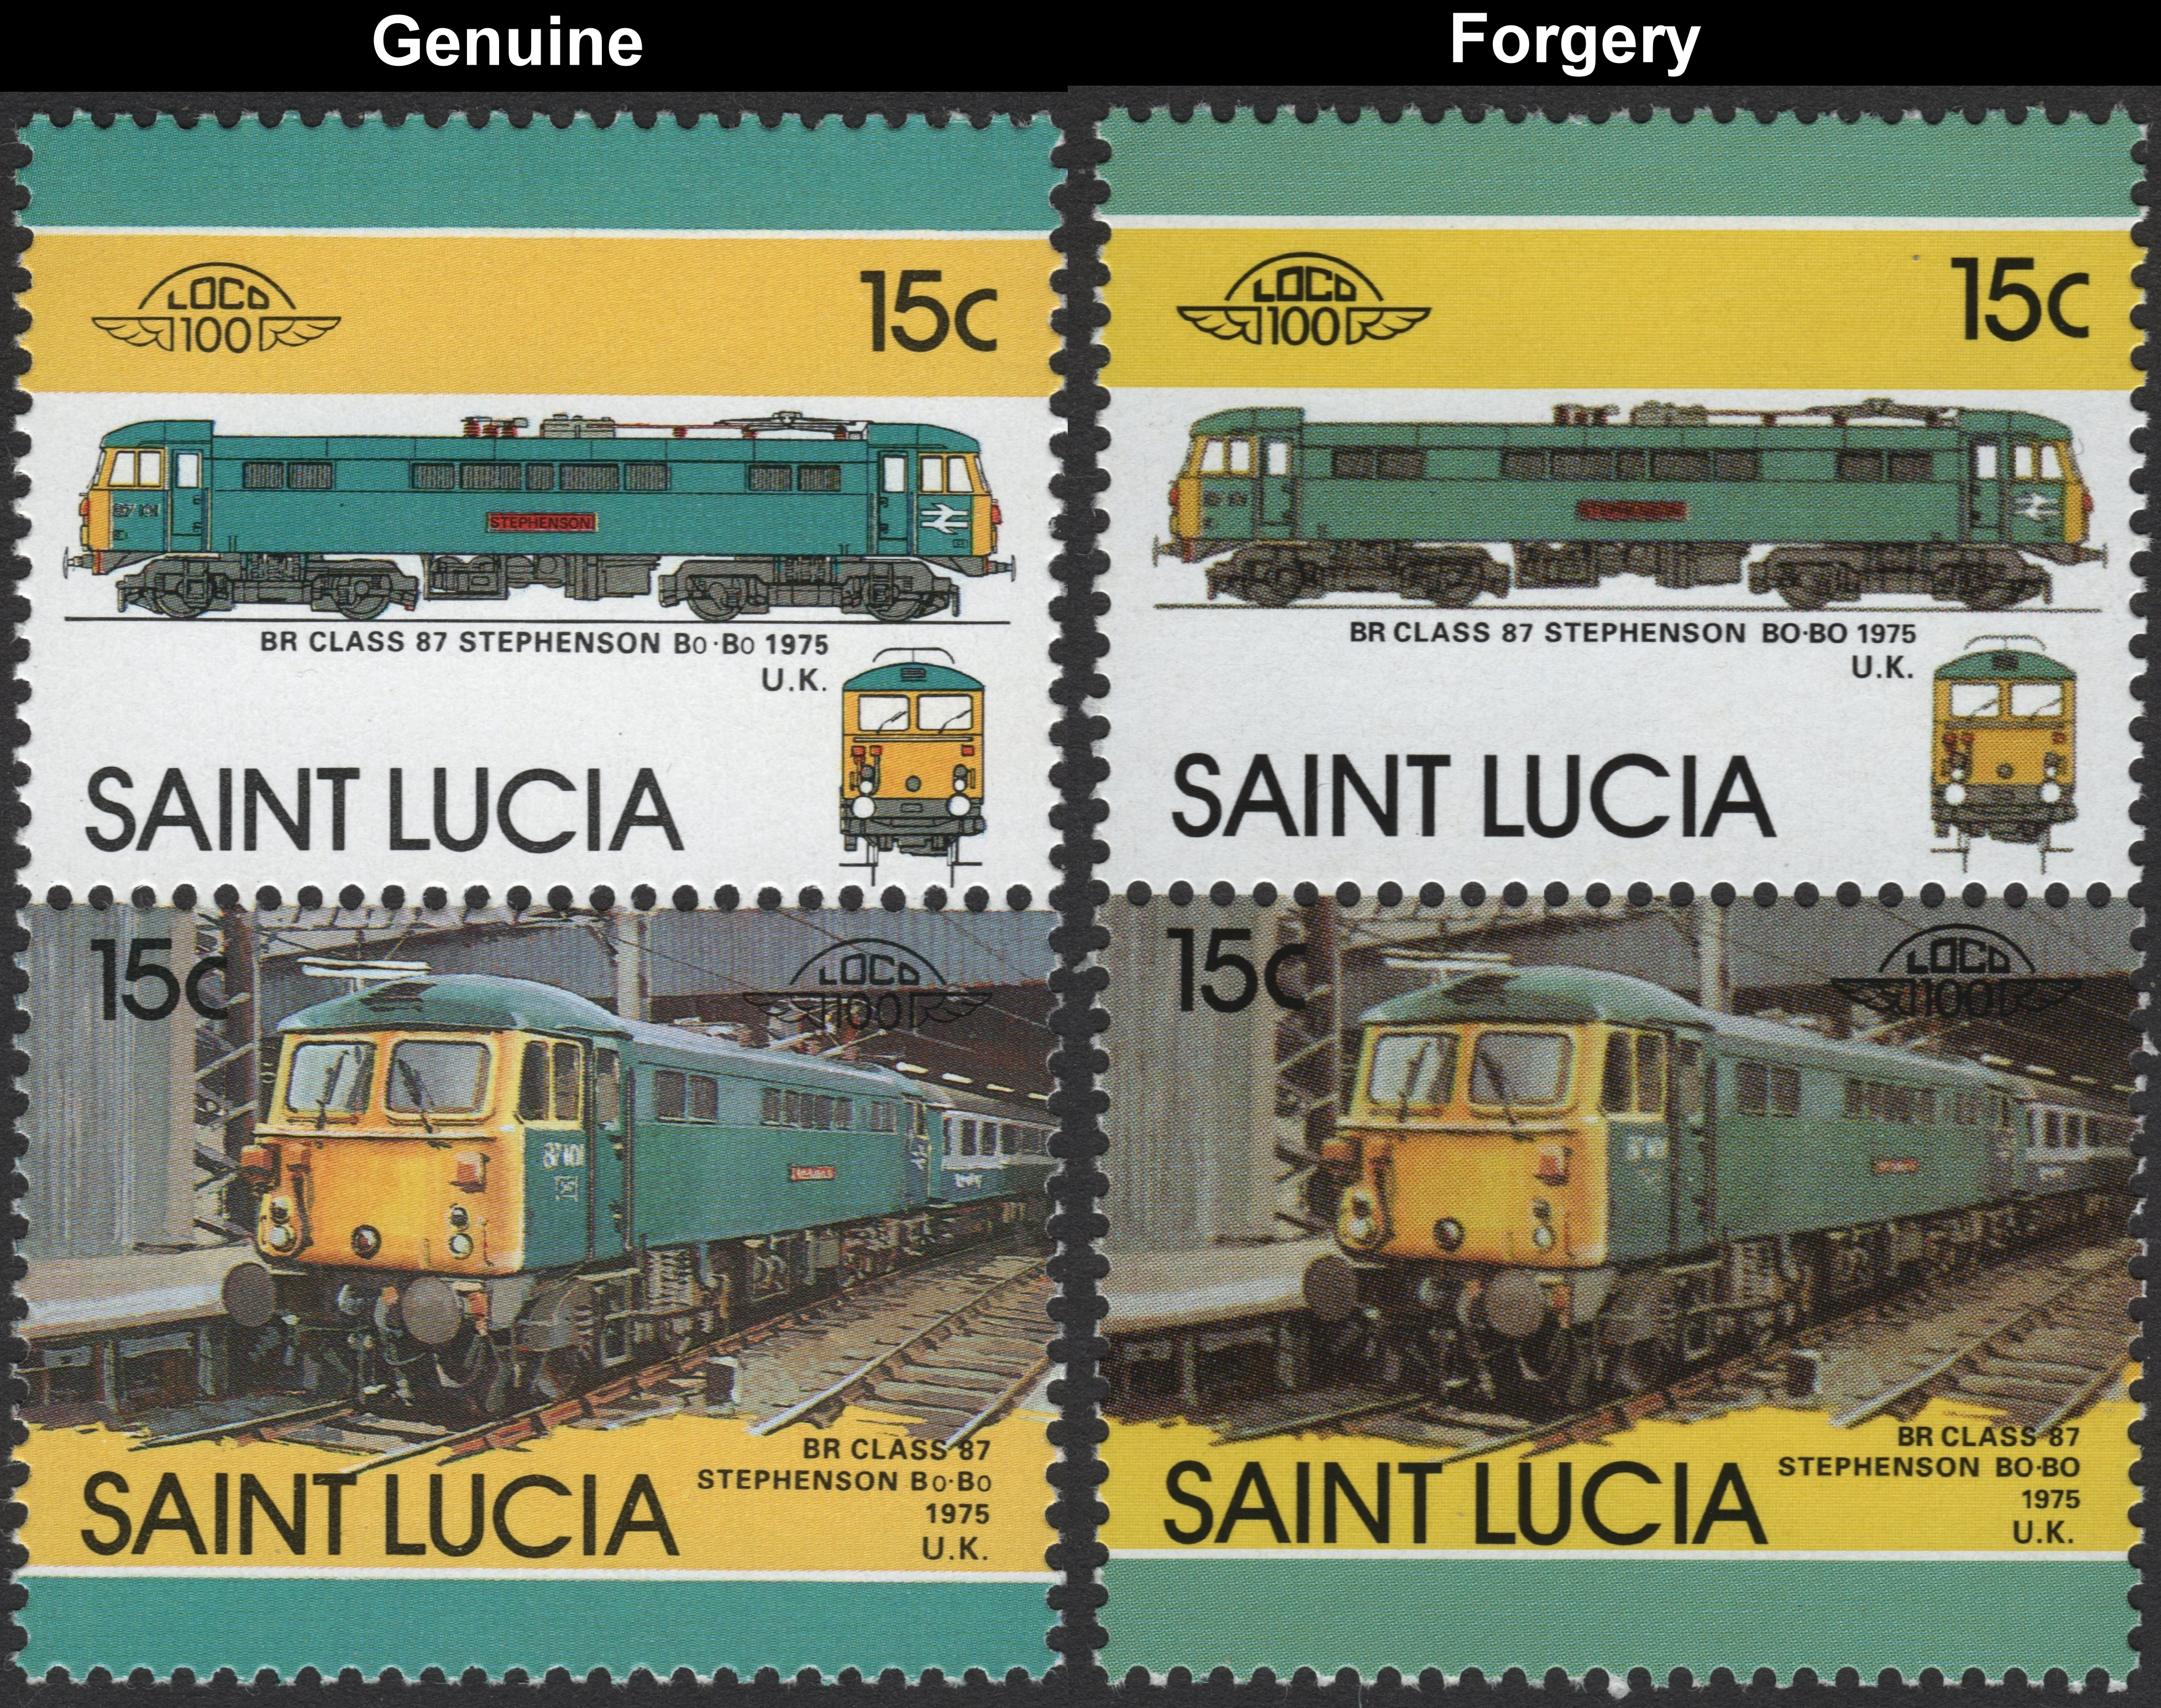 Saint Lucia 1986 Locomotives 5th Series Stamp Forgeries